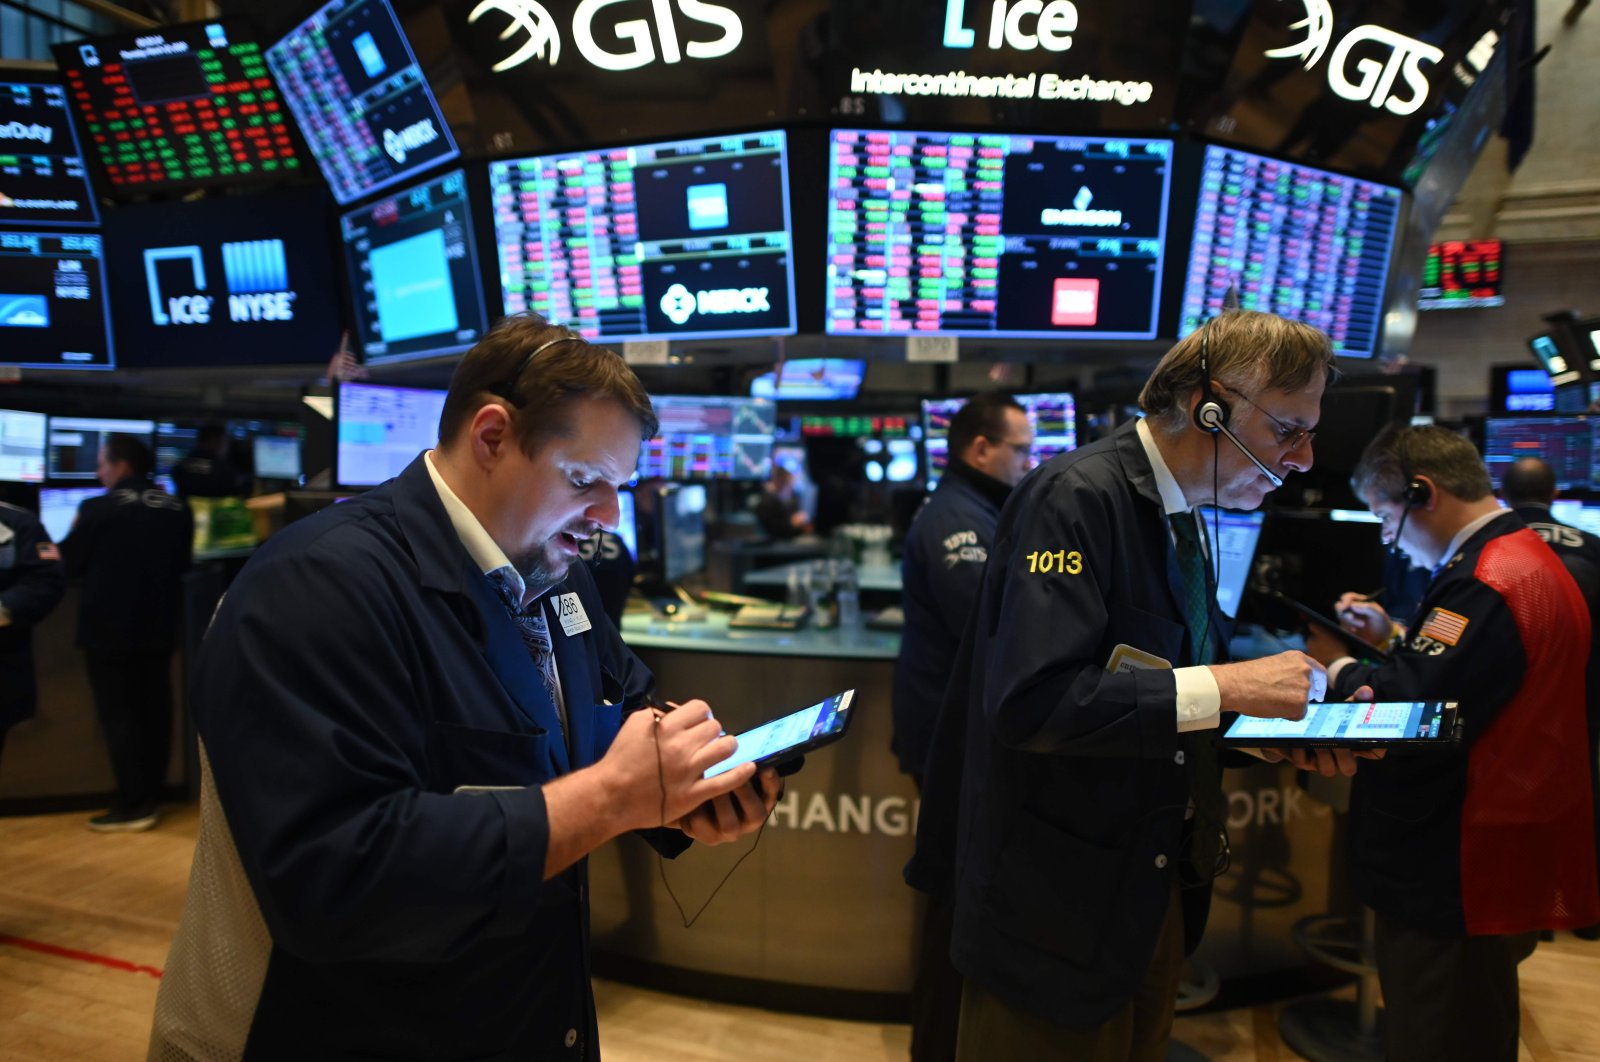 Traders work at the New York Stock Exchange (NYSE) in New York City, United States, Thursday, March 19, 2020. (AFP Photo)